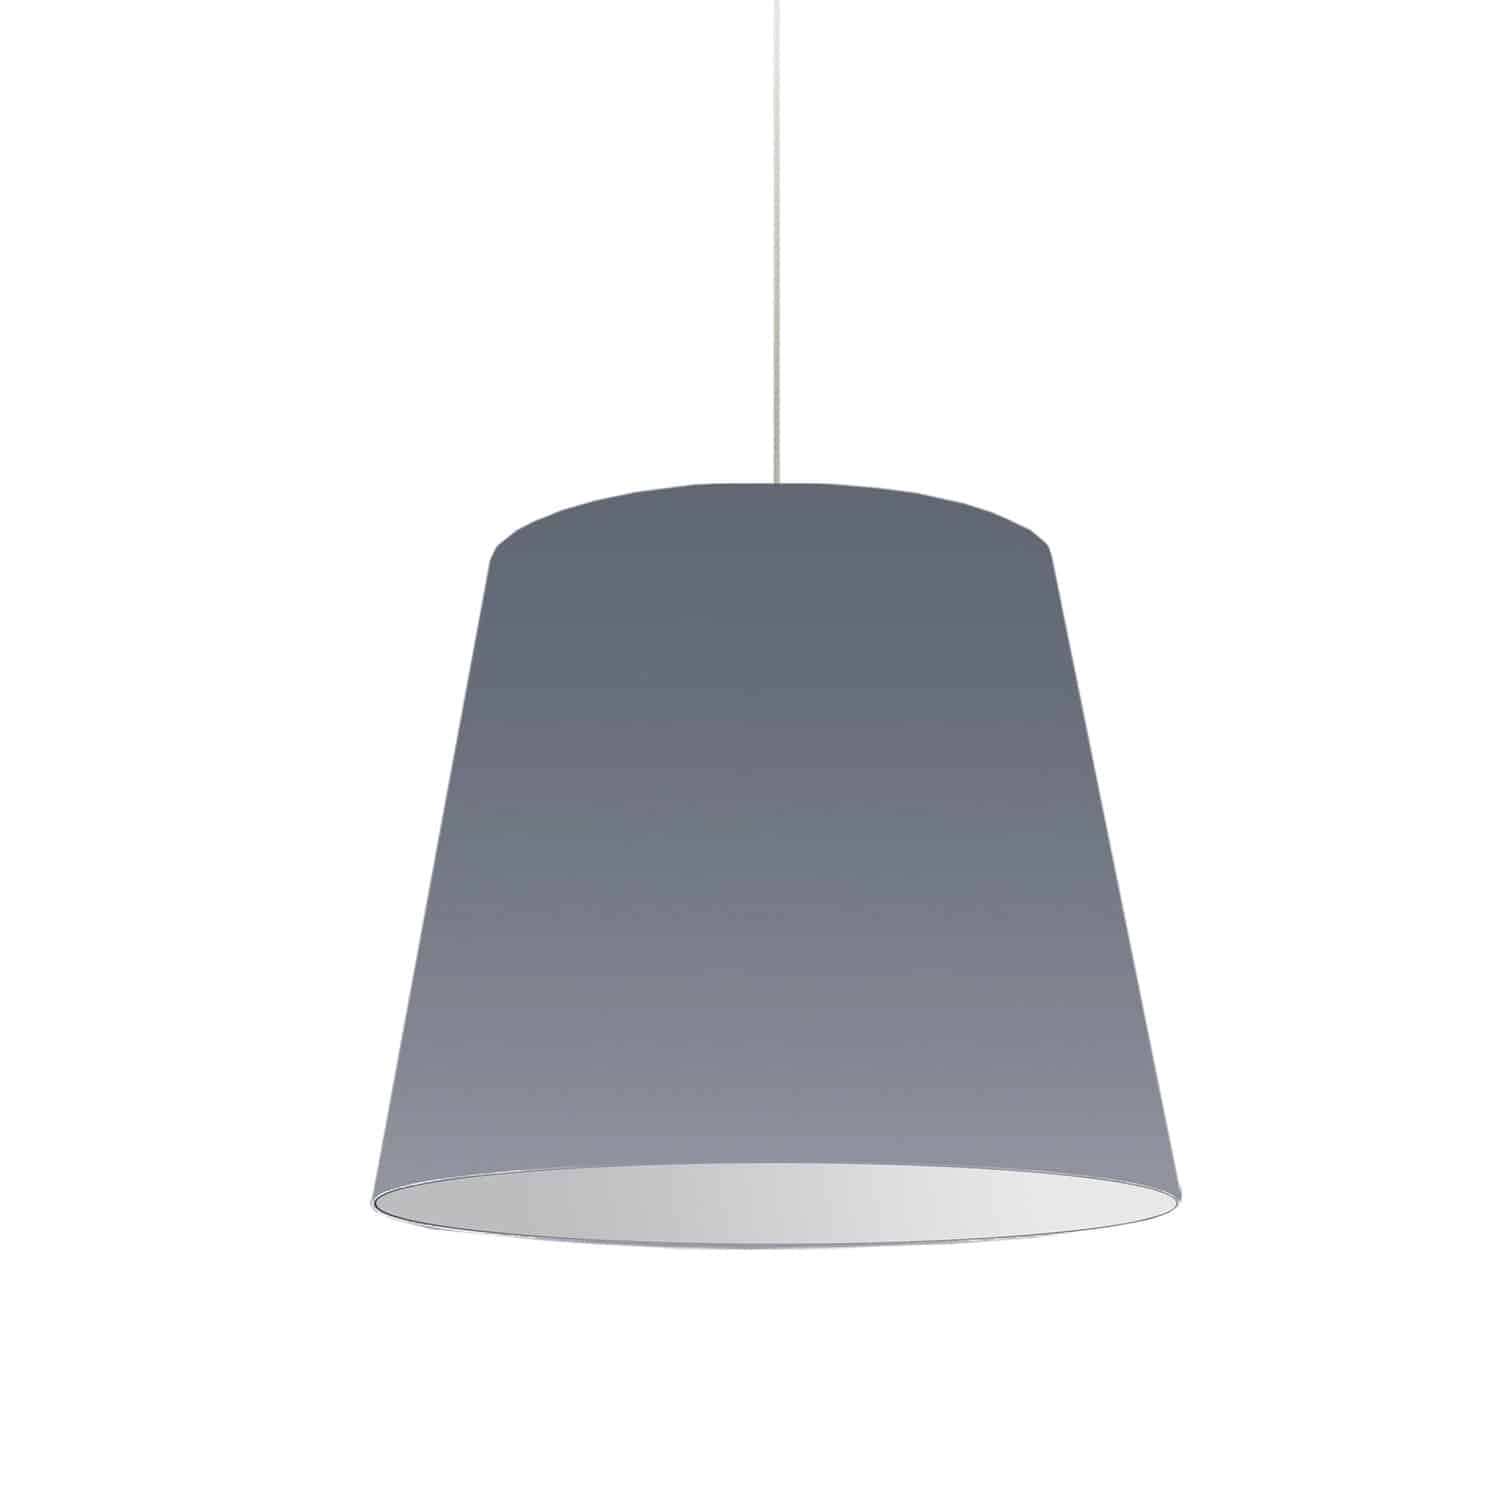 1 Light Oversized Drum Pendant Medium Grey Shade